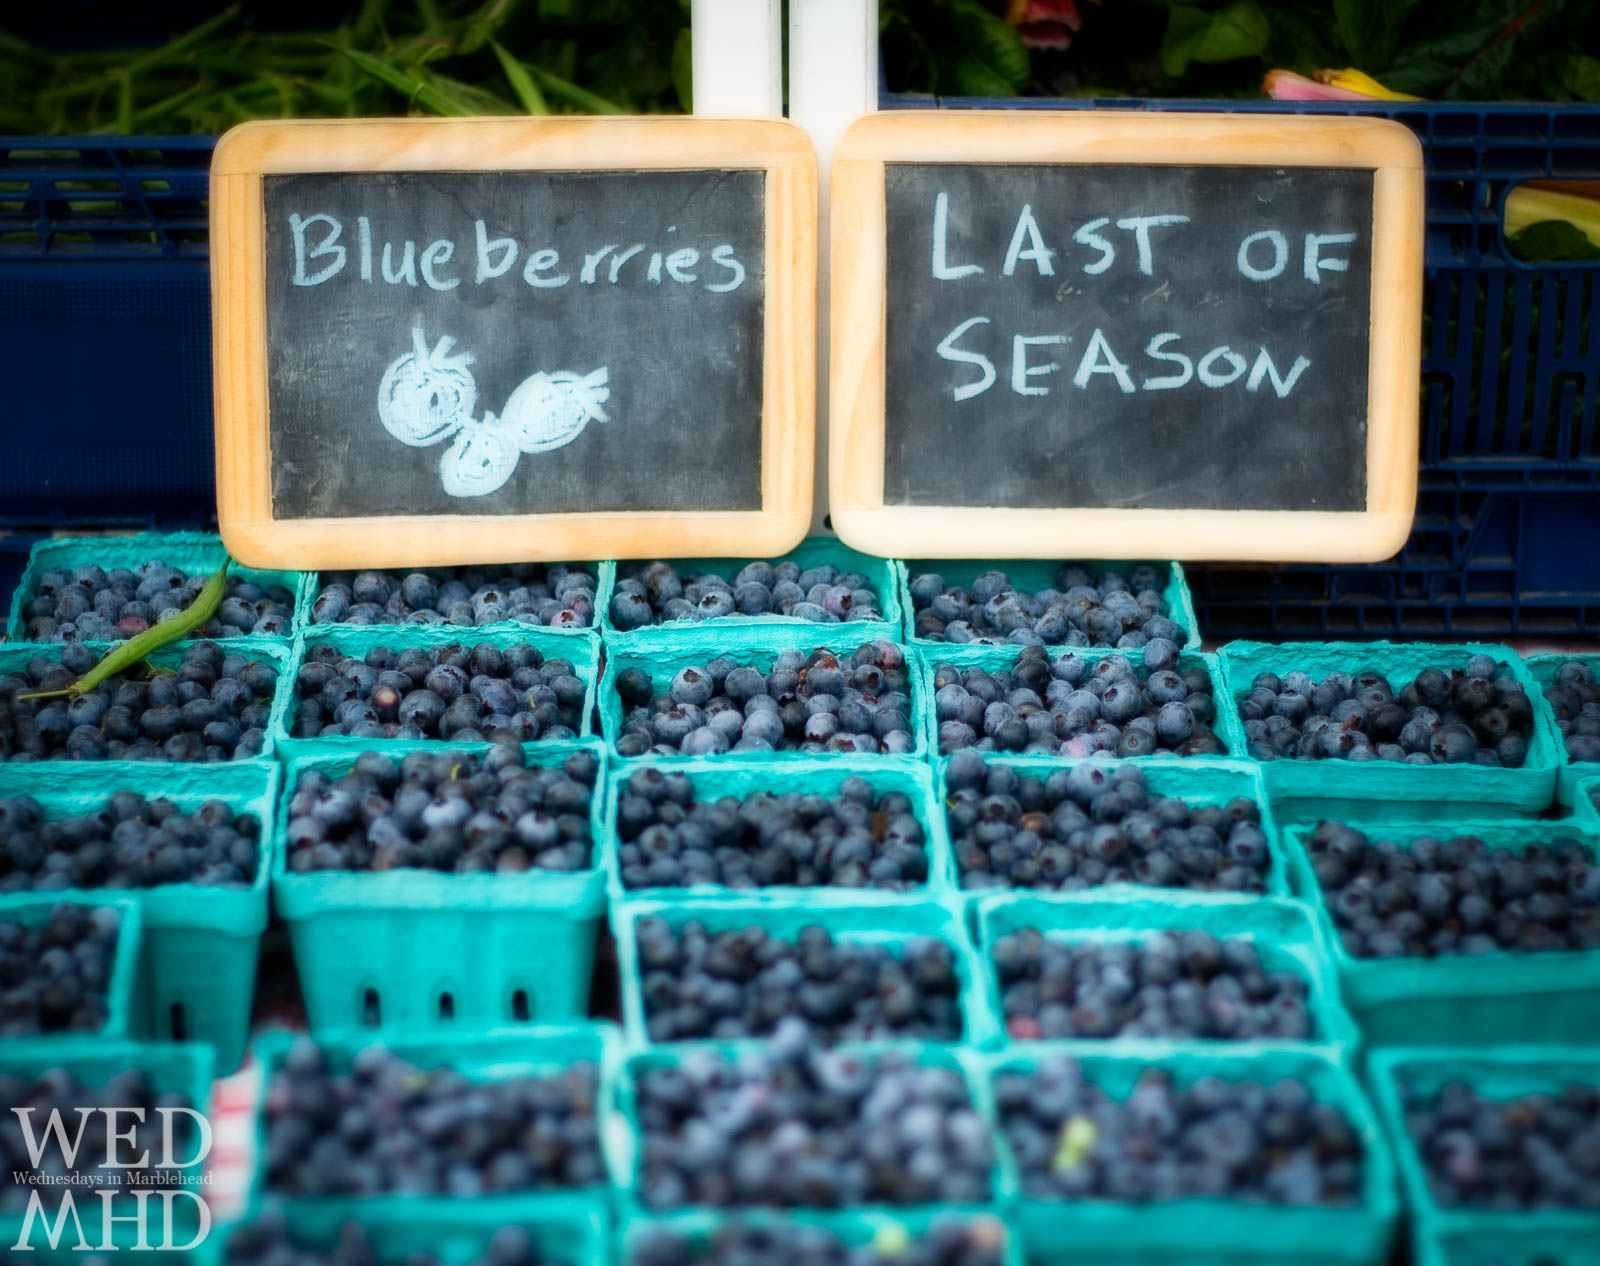 Last Blueberries of the Season at the Farmers Market